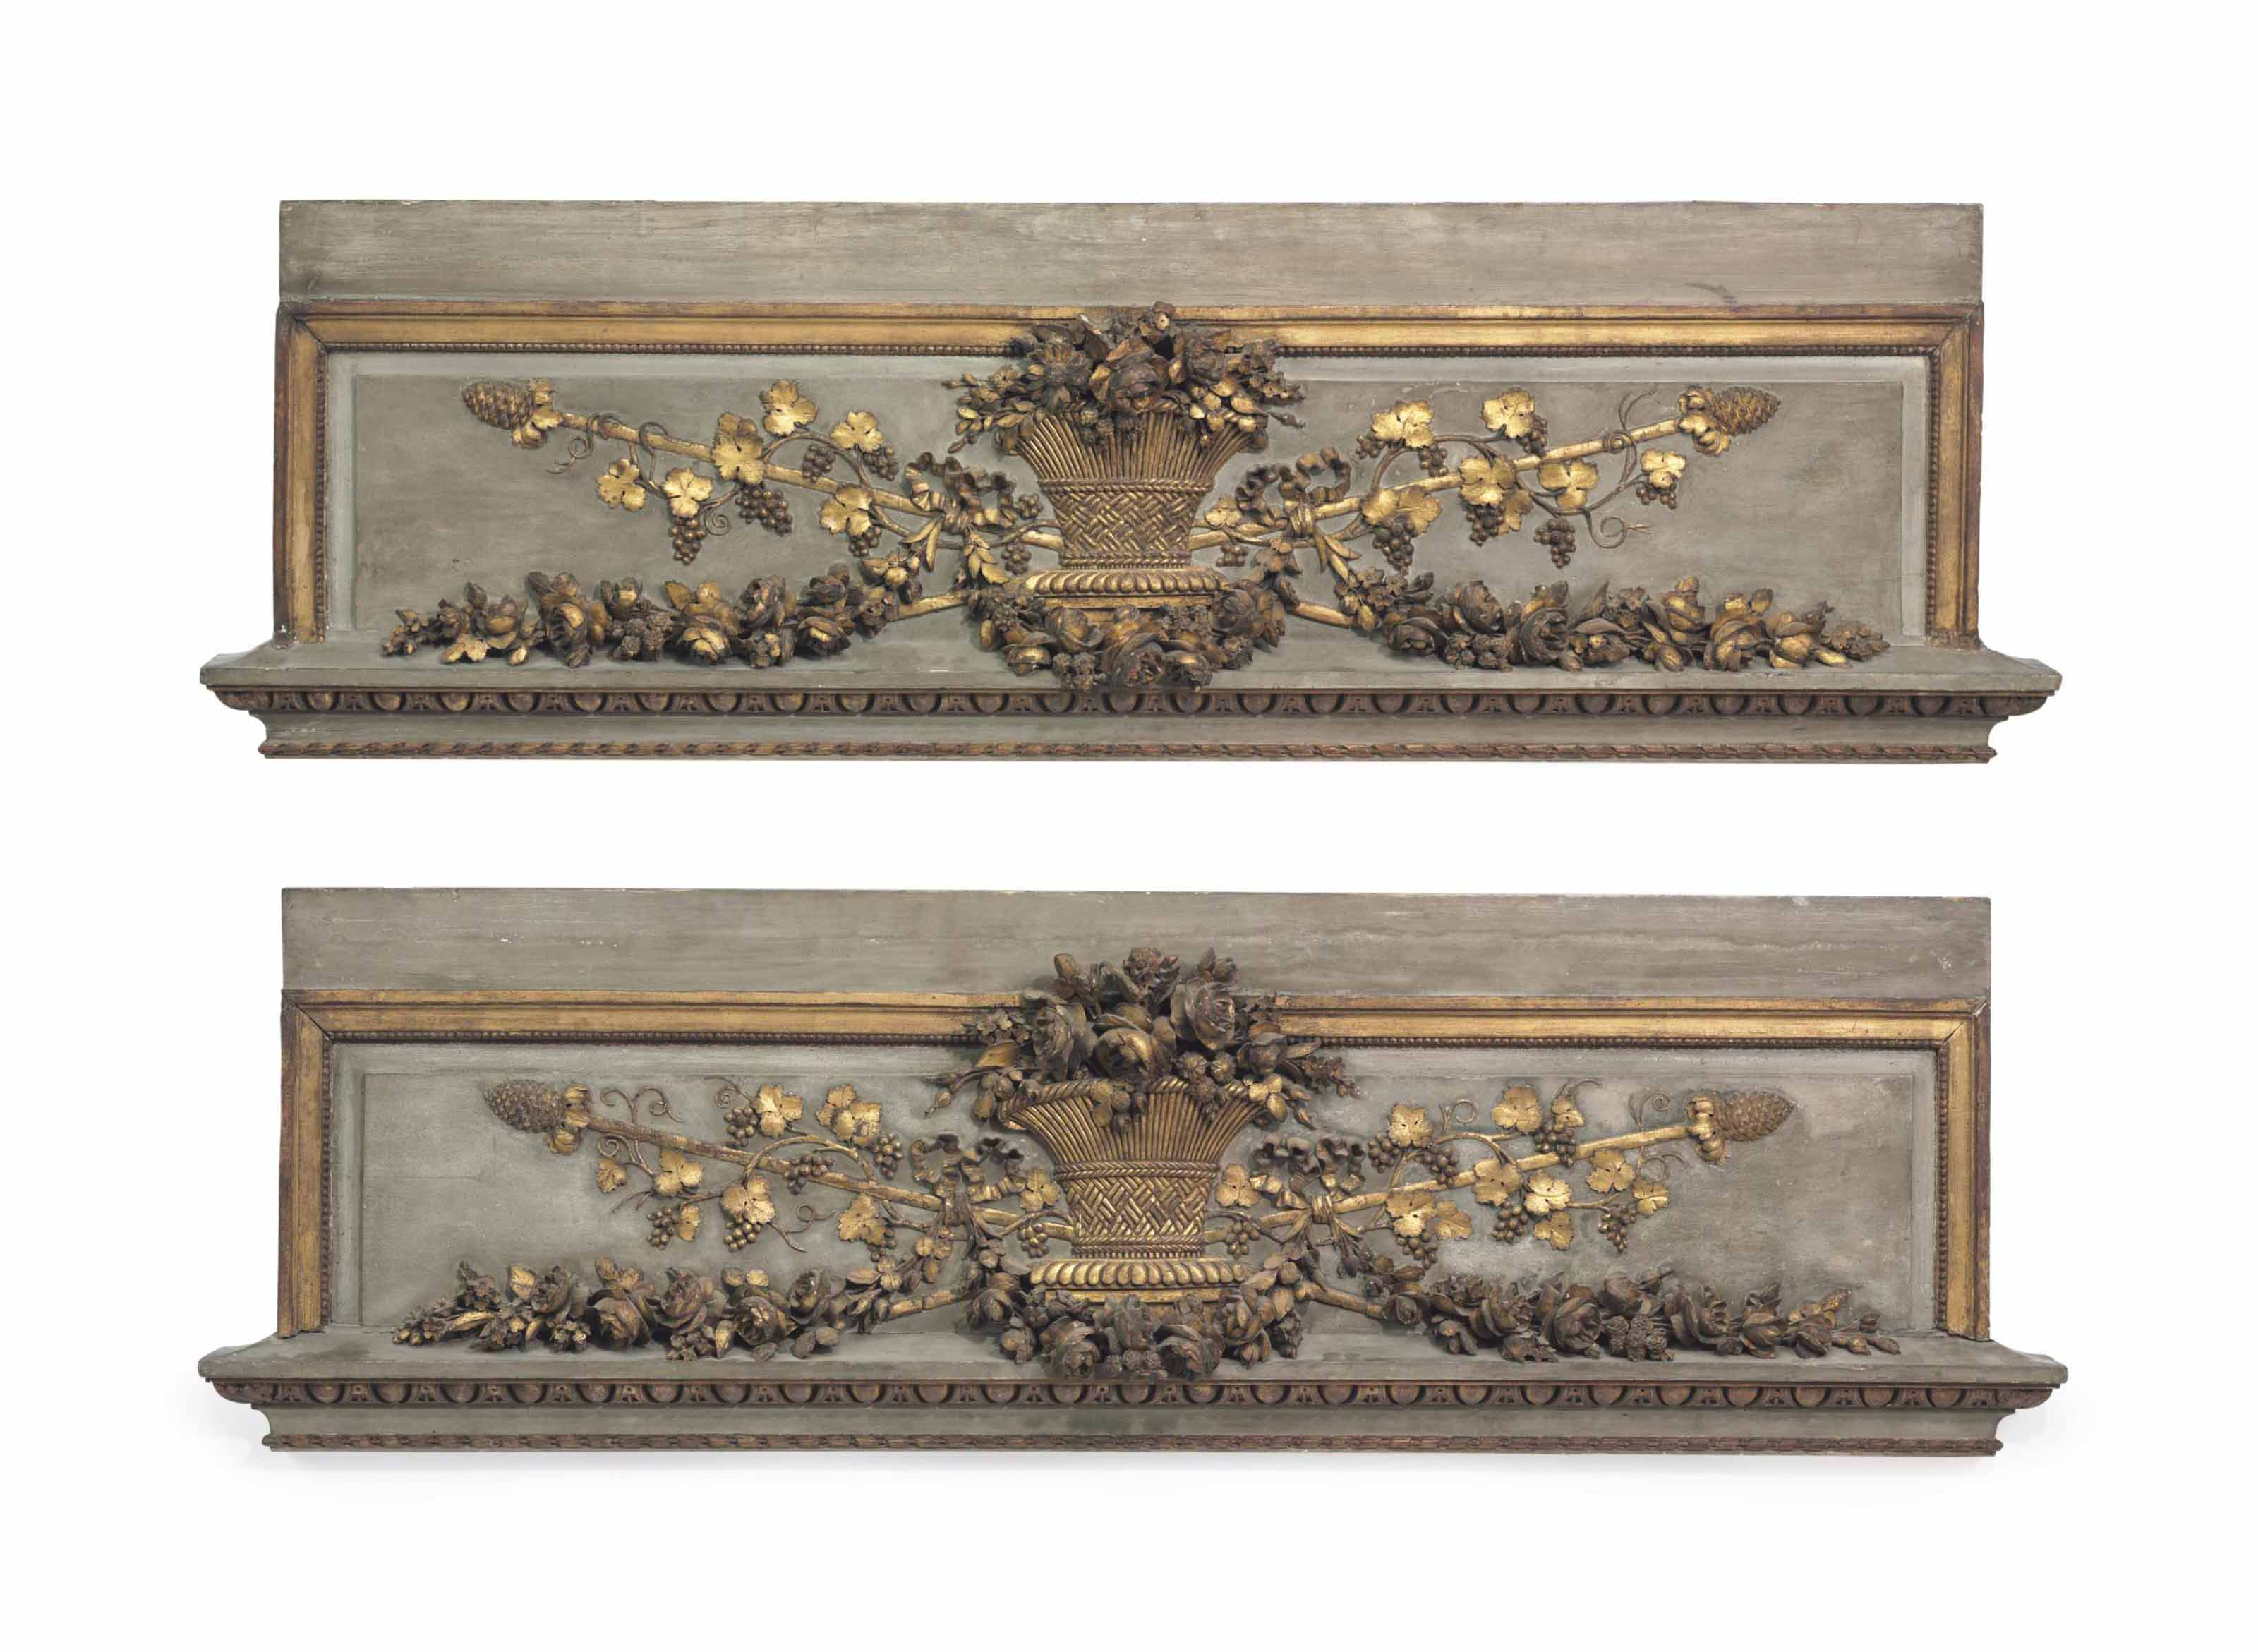 A PAIR OF LOUIS XVI GREY-PAINTED AND PARCEL-GILT OVERDOOR PANELS